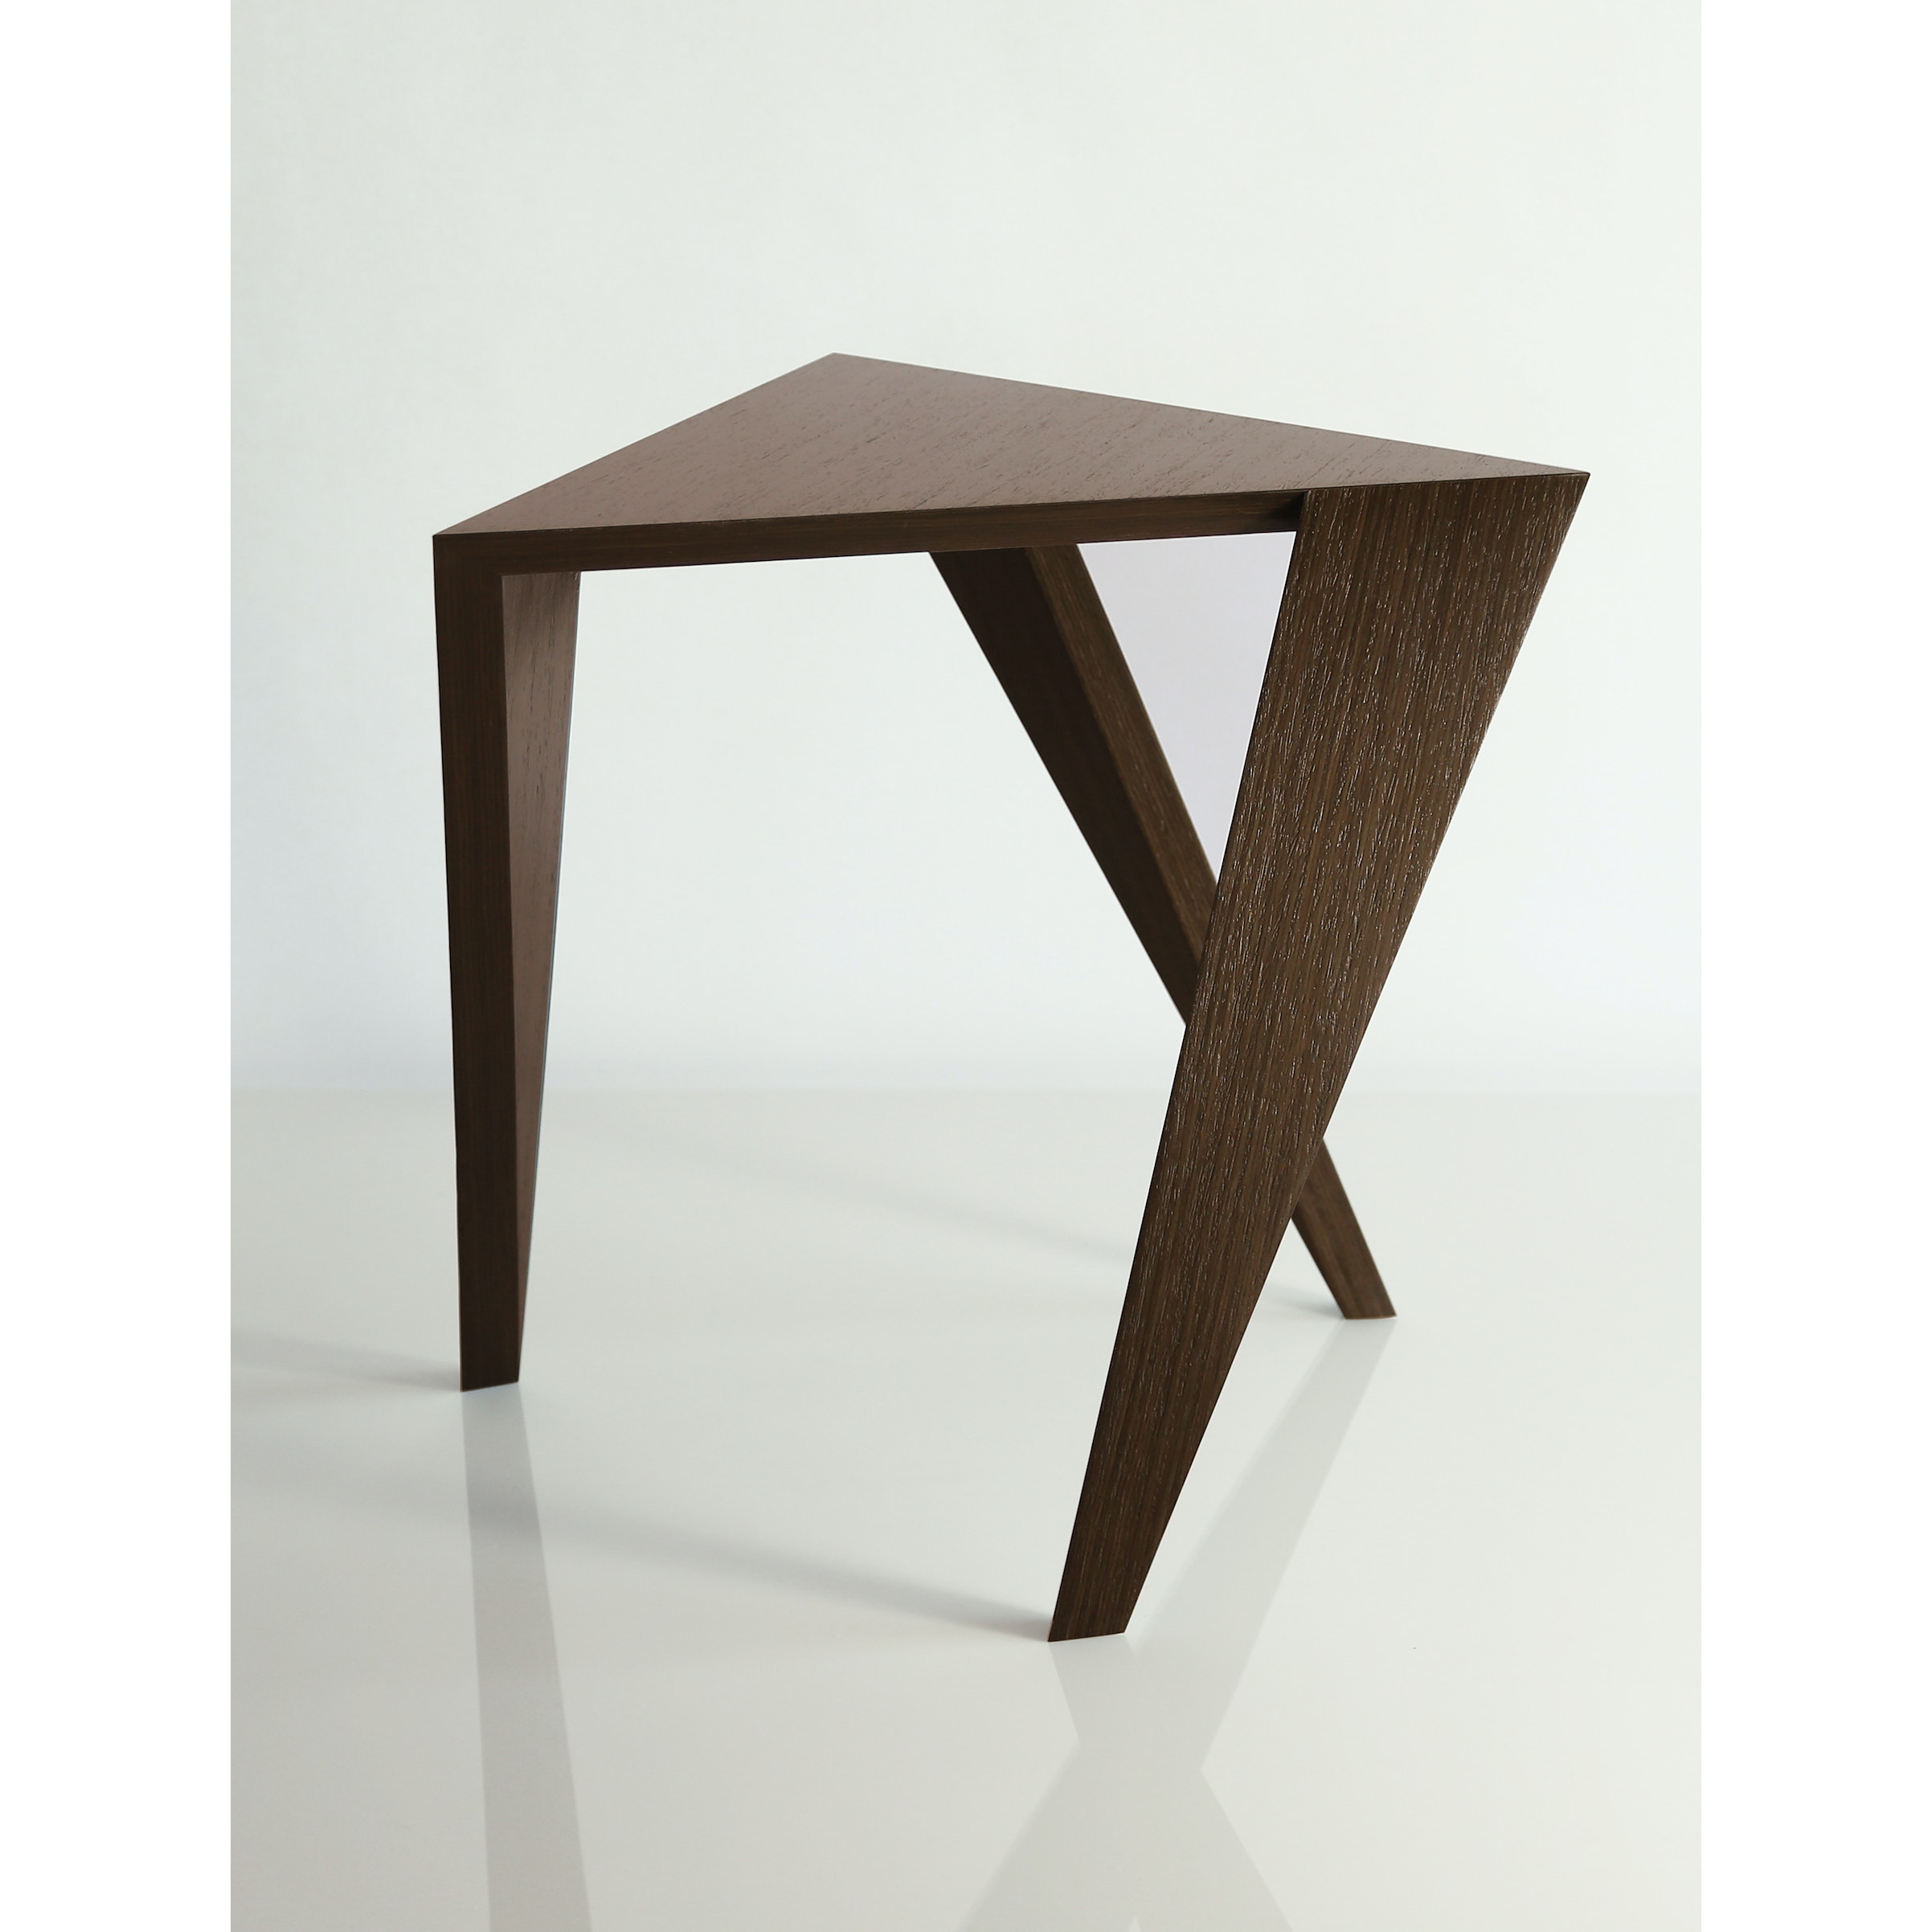 Peri Towels Home Goods: Modern Side Tables By Contemporary Designers At Haute Living